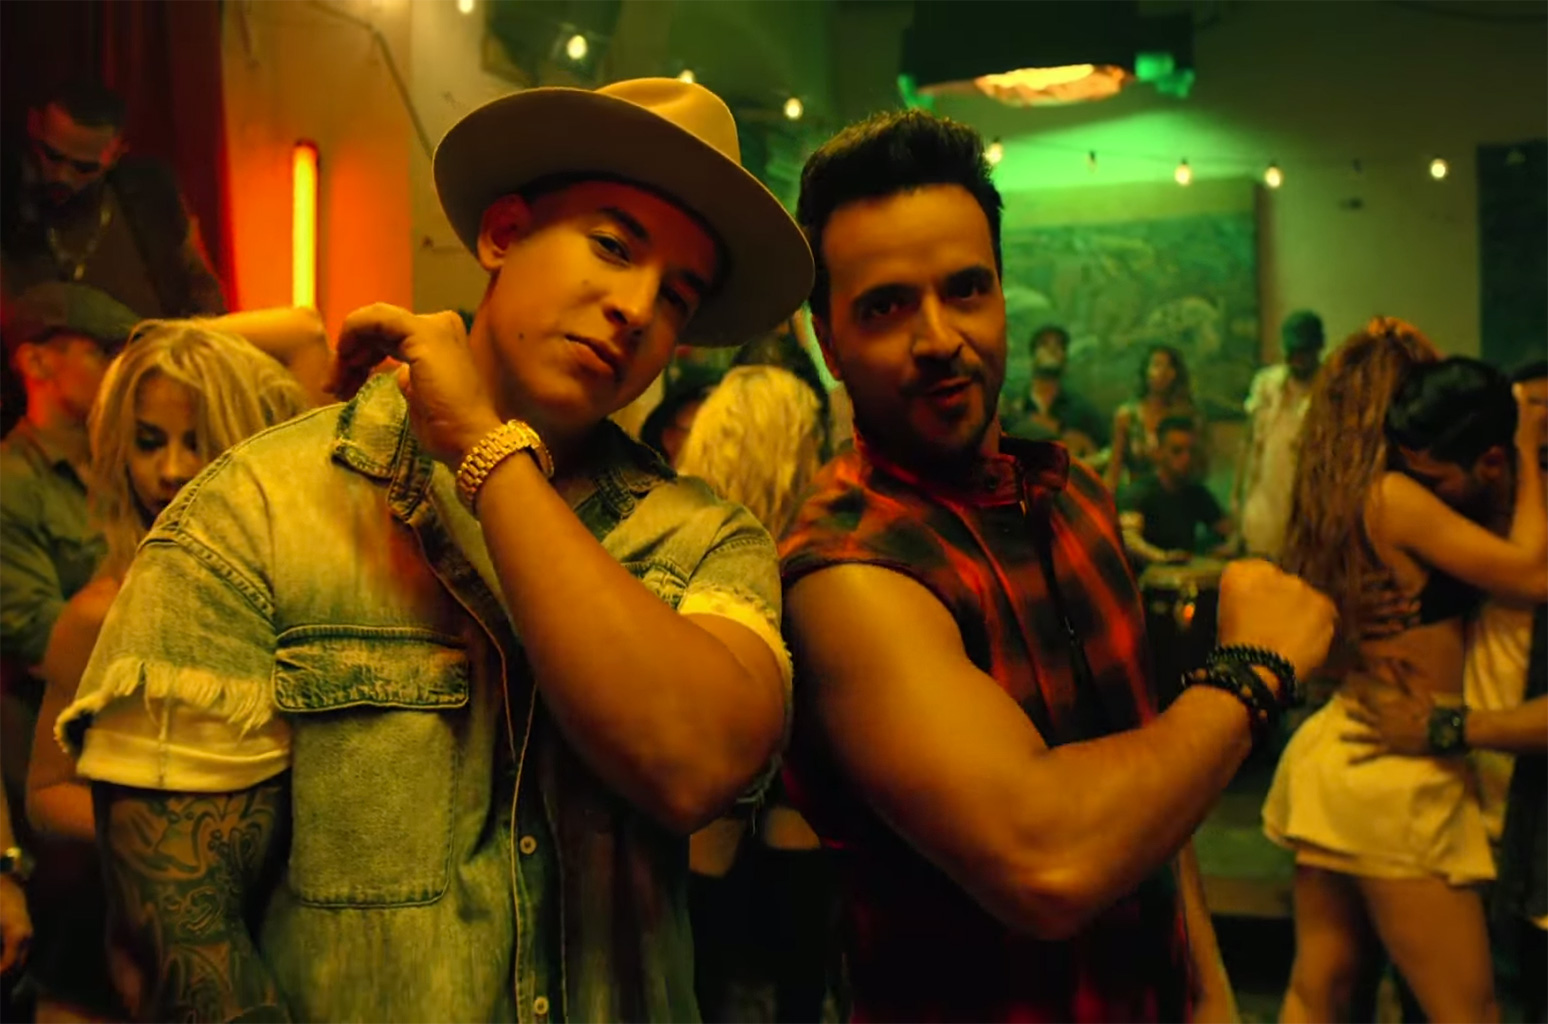 Luis-Fonsi-Despacito-ft.-Daddy-Yankee-screenshot-2017-billboard-1548